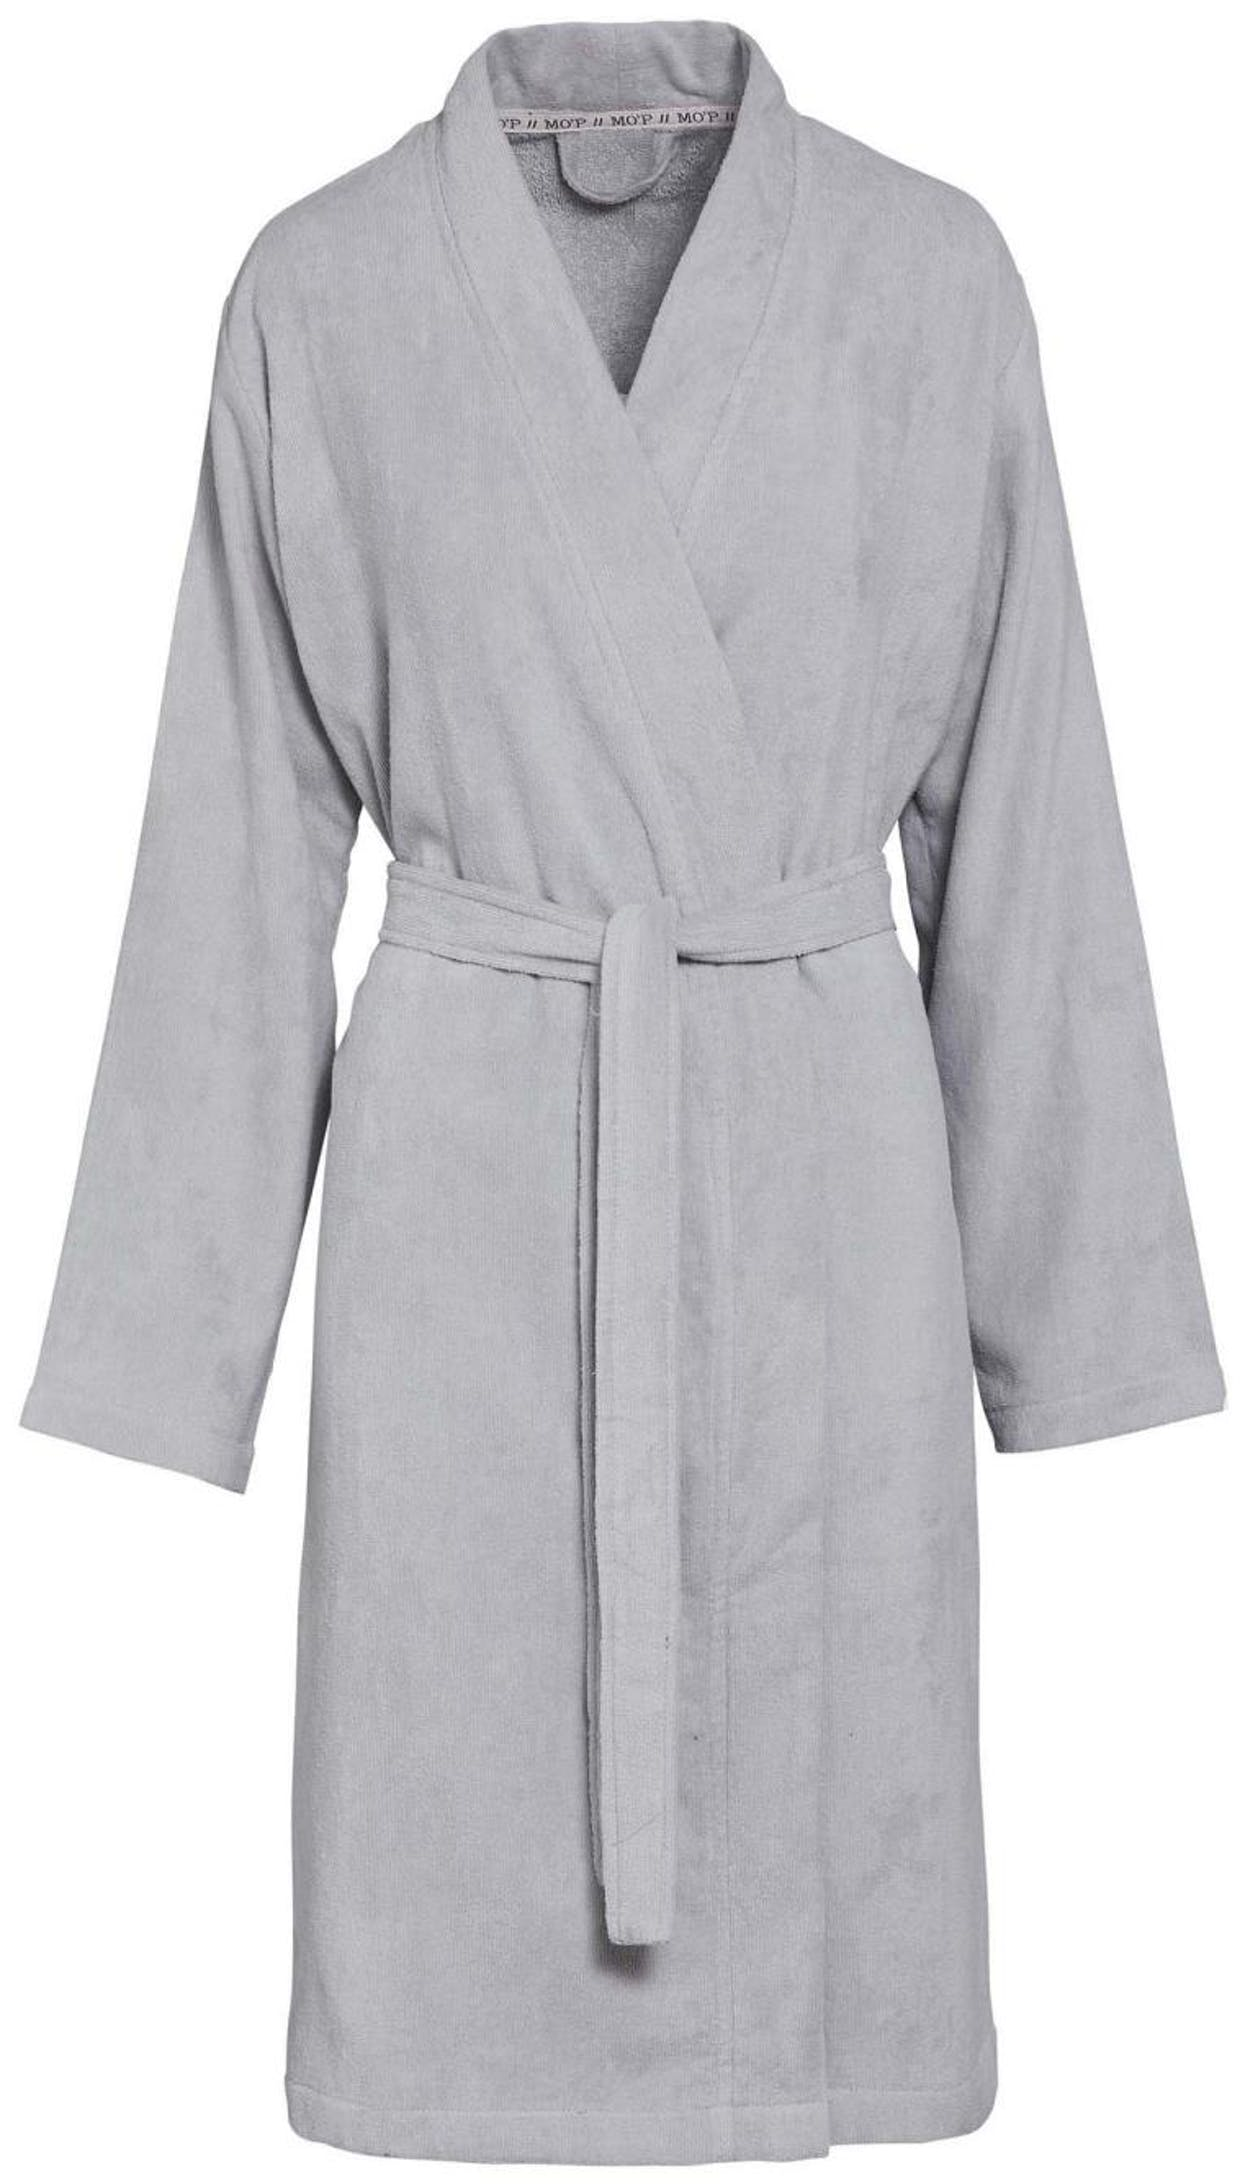 Marc O'Polo Tuppu Soft grey Bathrobe L